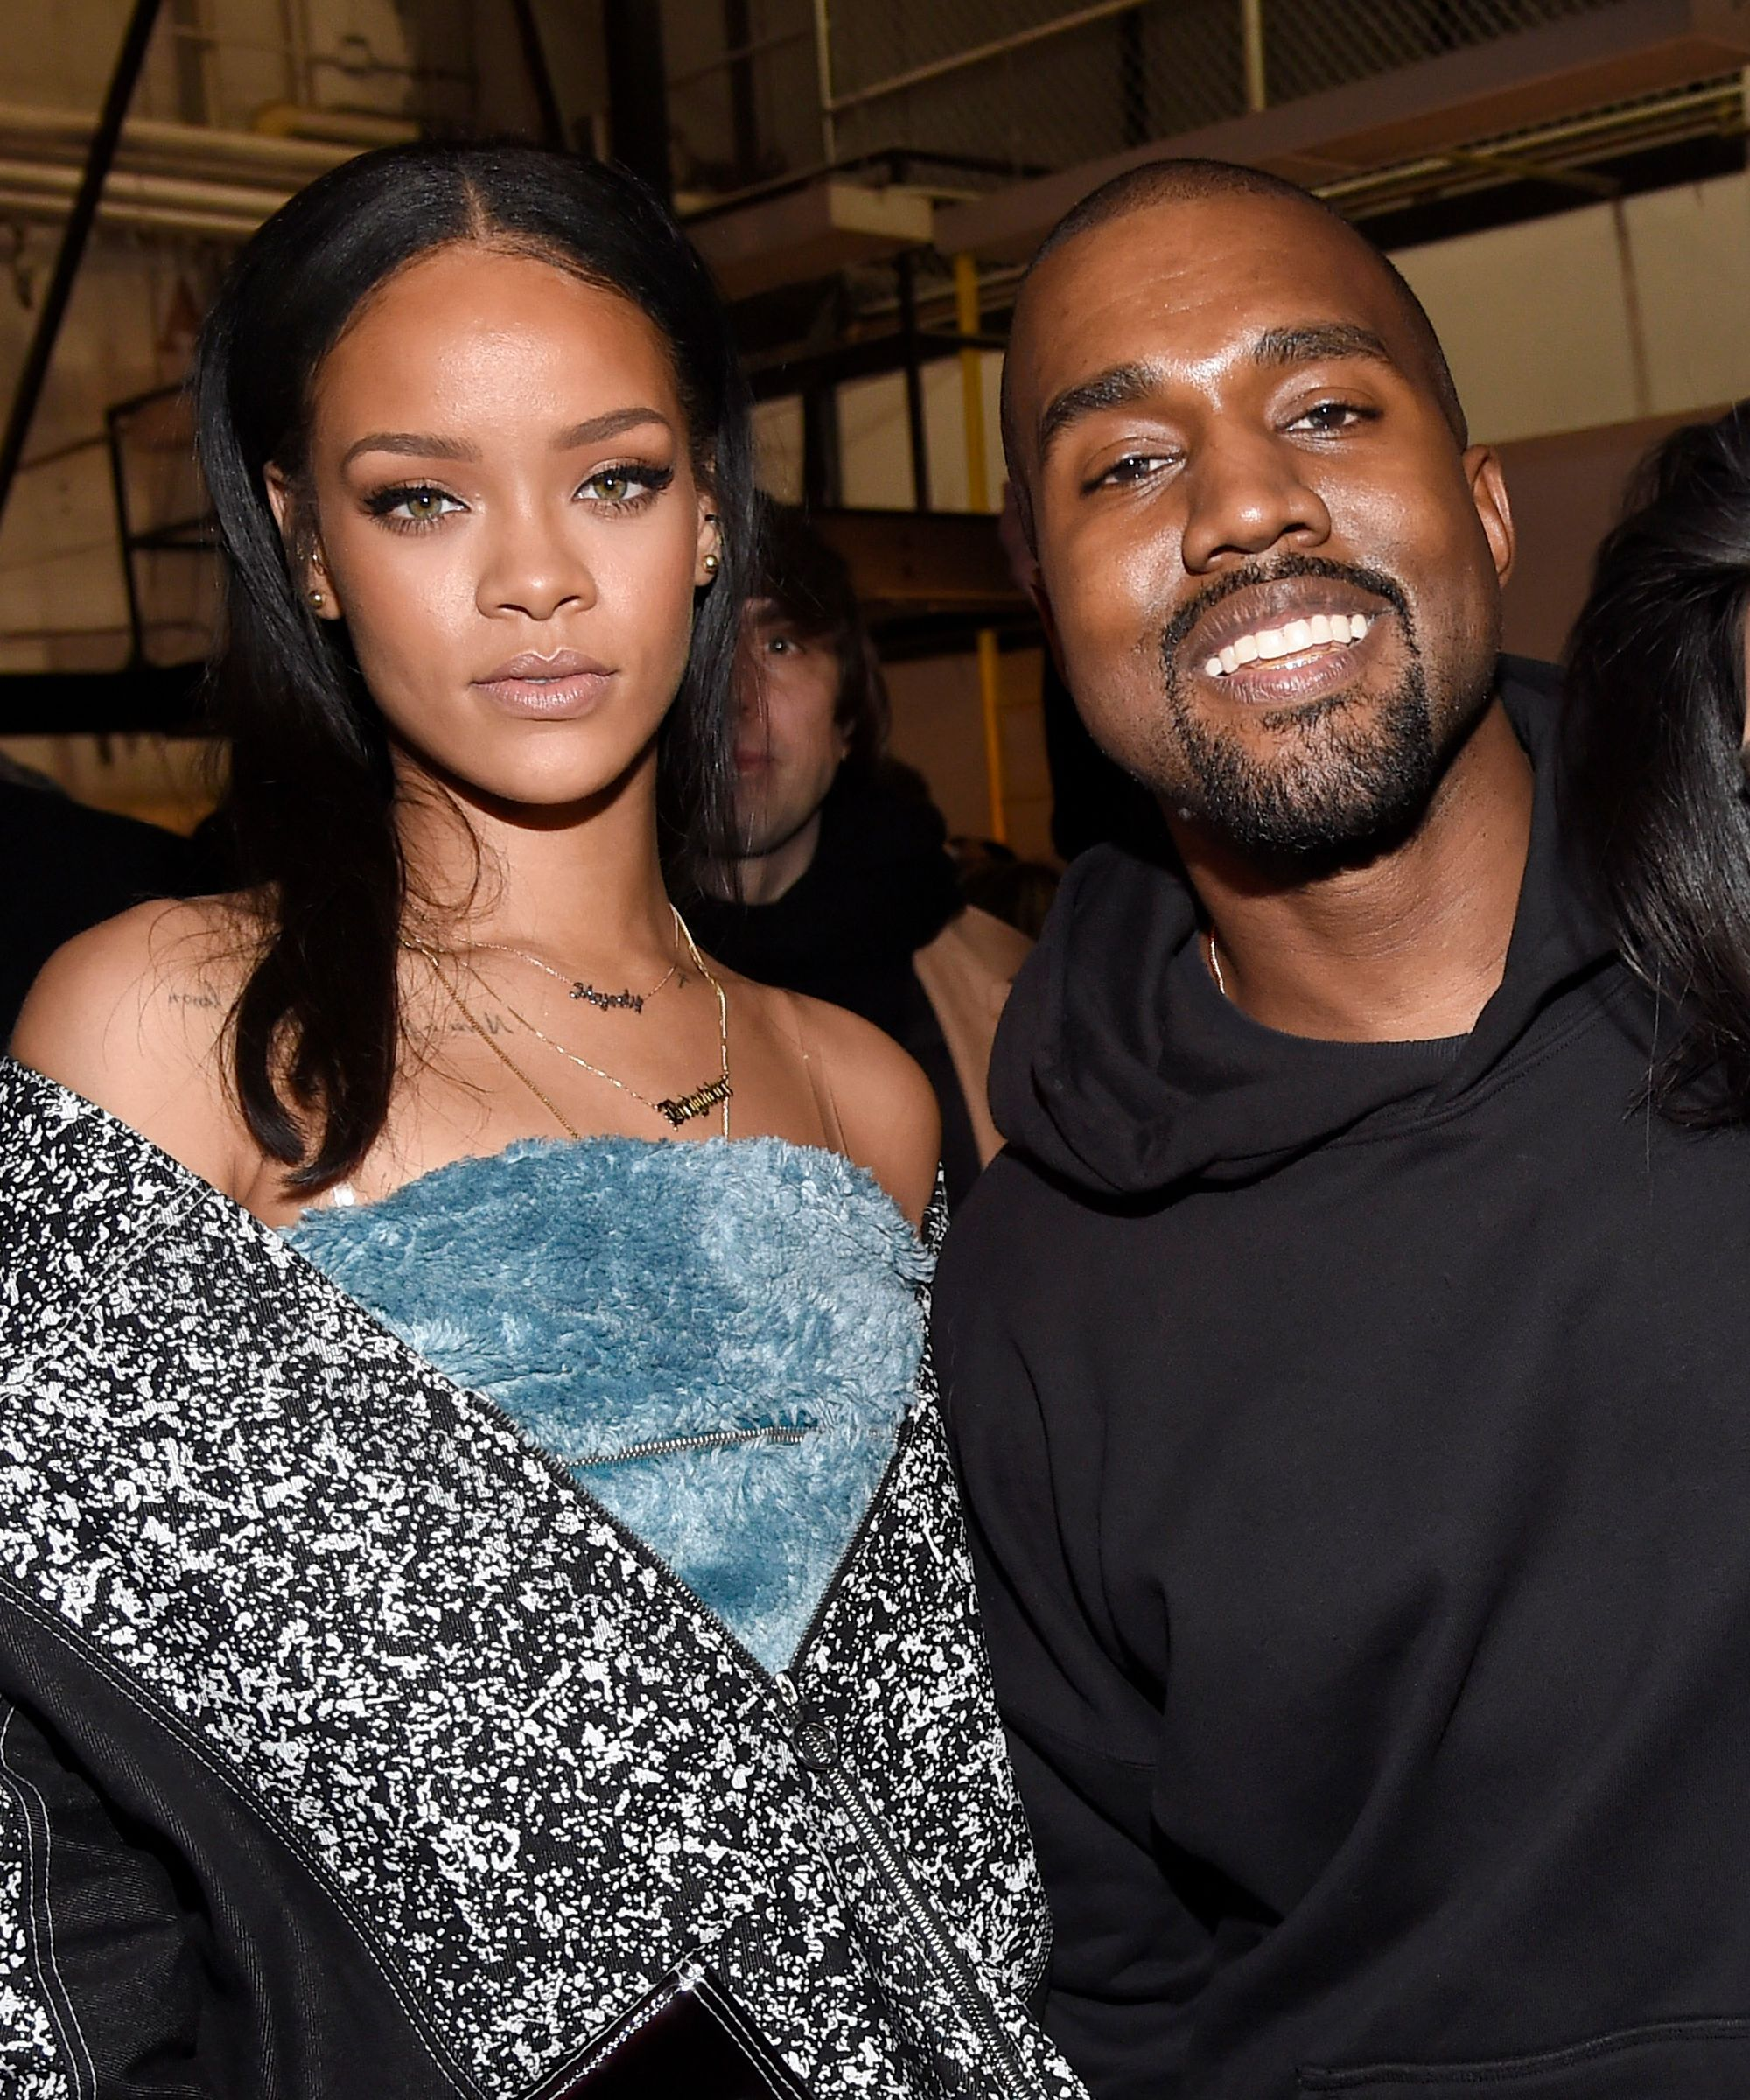 Rihanna Drake More Unfollow Kanye West After His Maga Tweets Rihanna And Drake Kanye West Smiling Rihanna